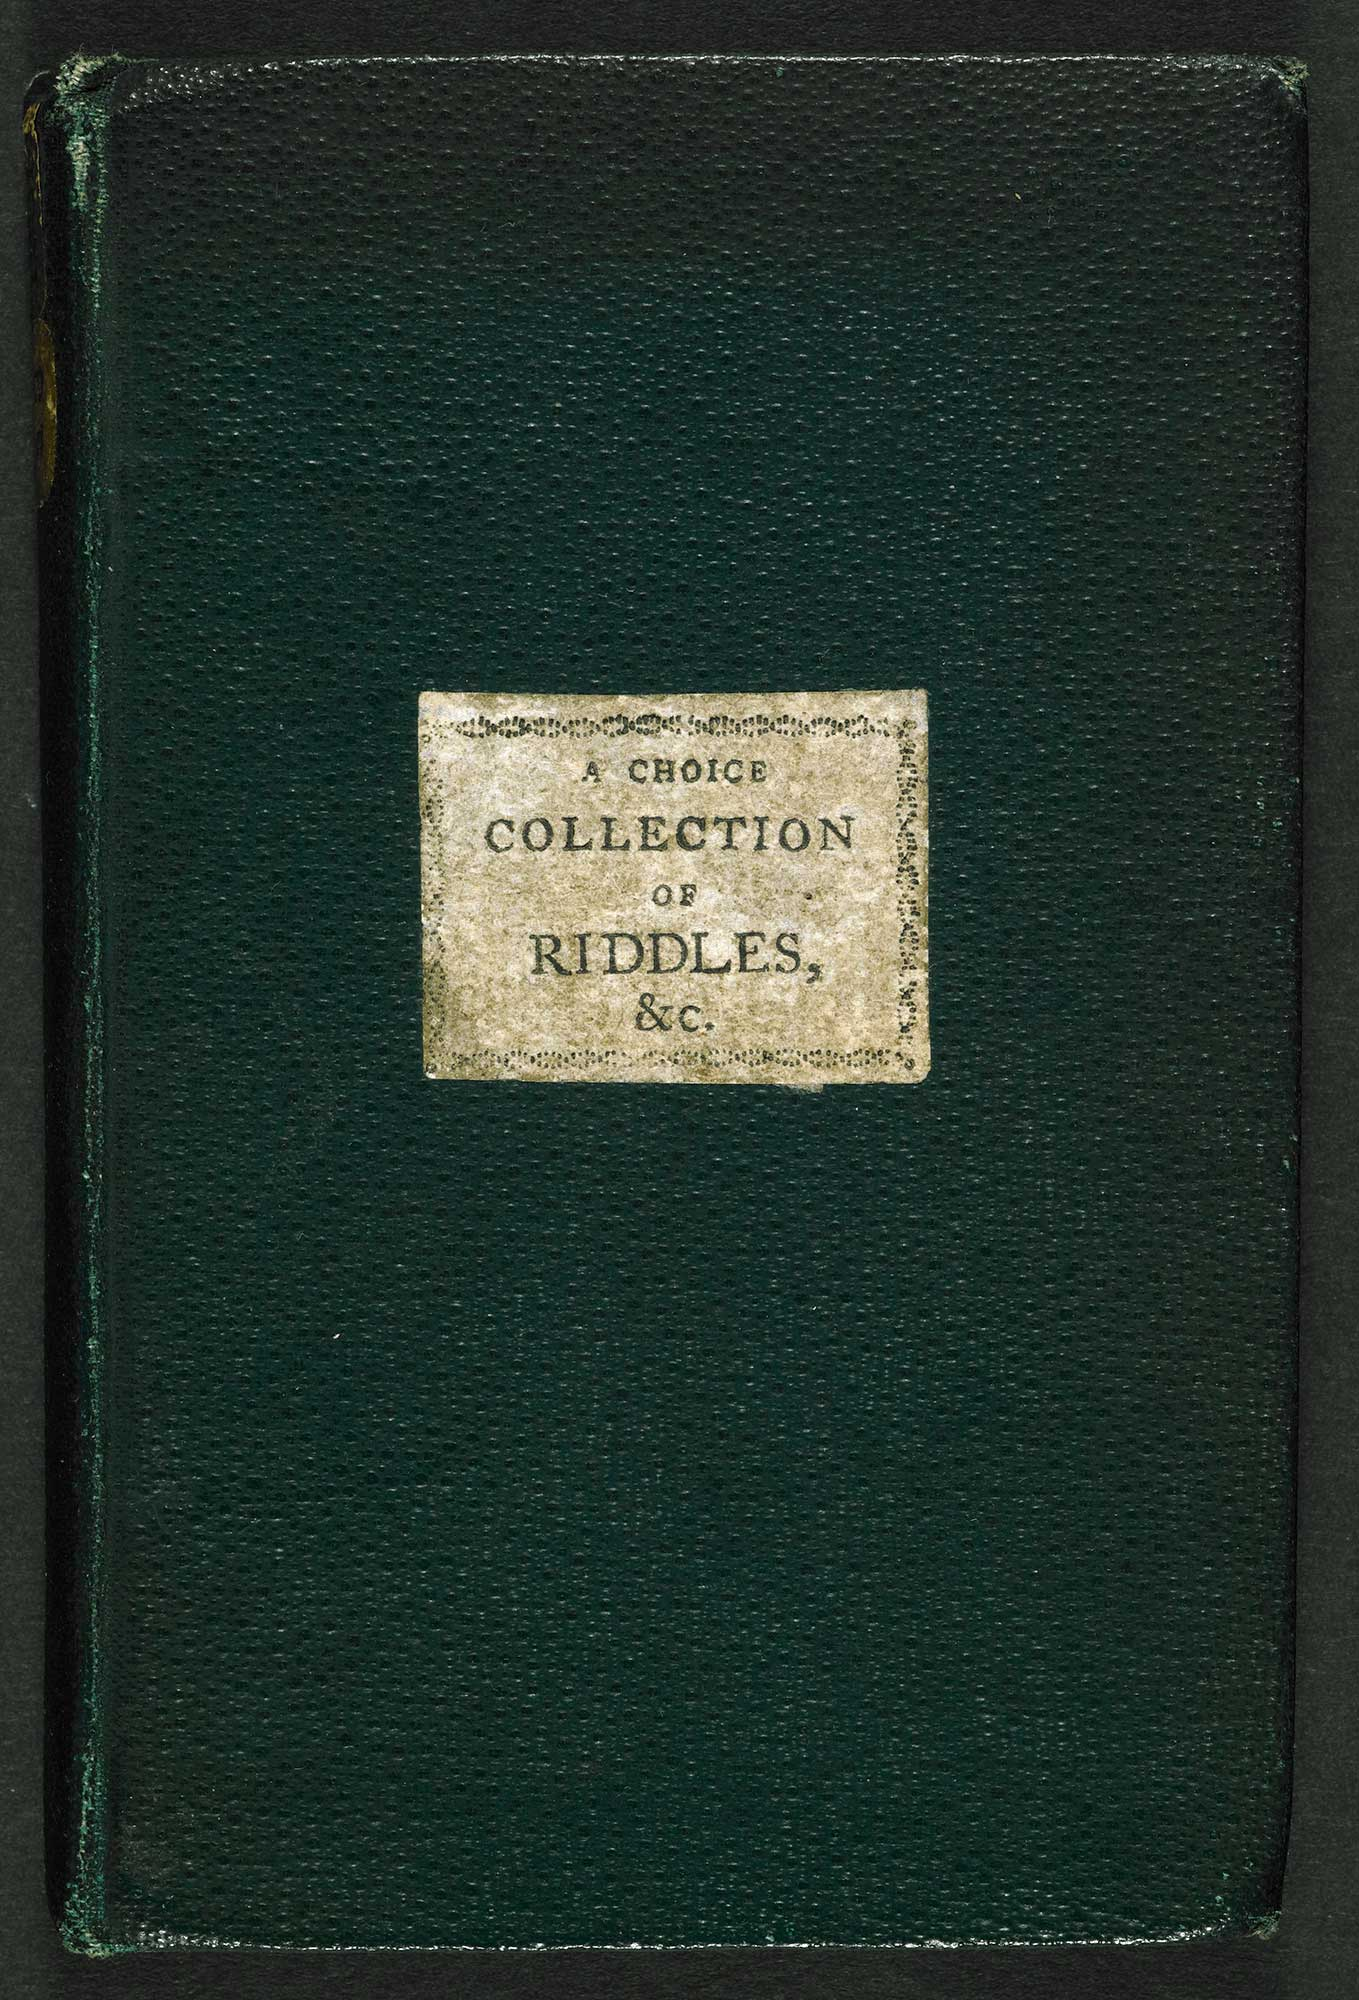 Riddles, Charades, Rebusses [page: front cover]